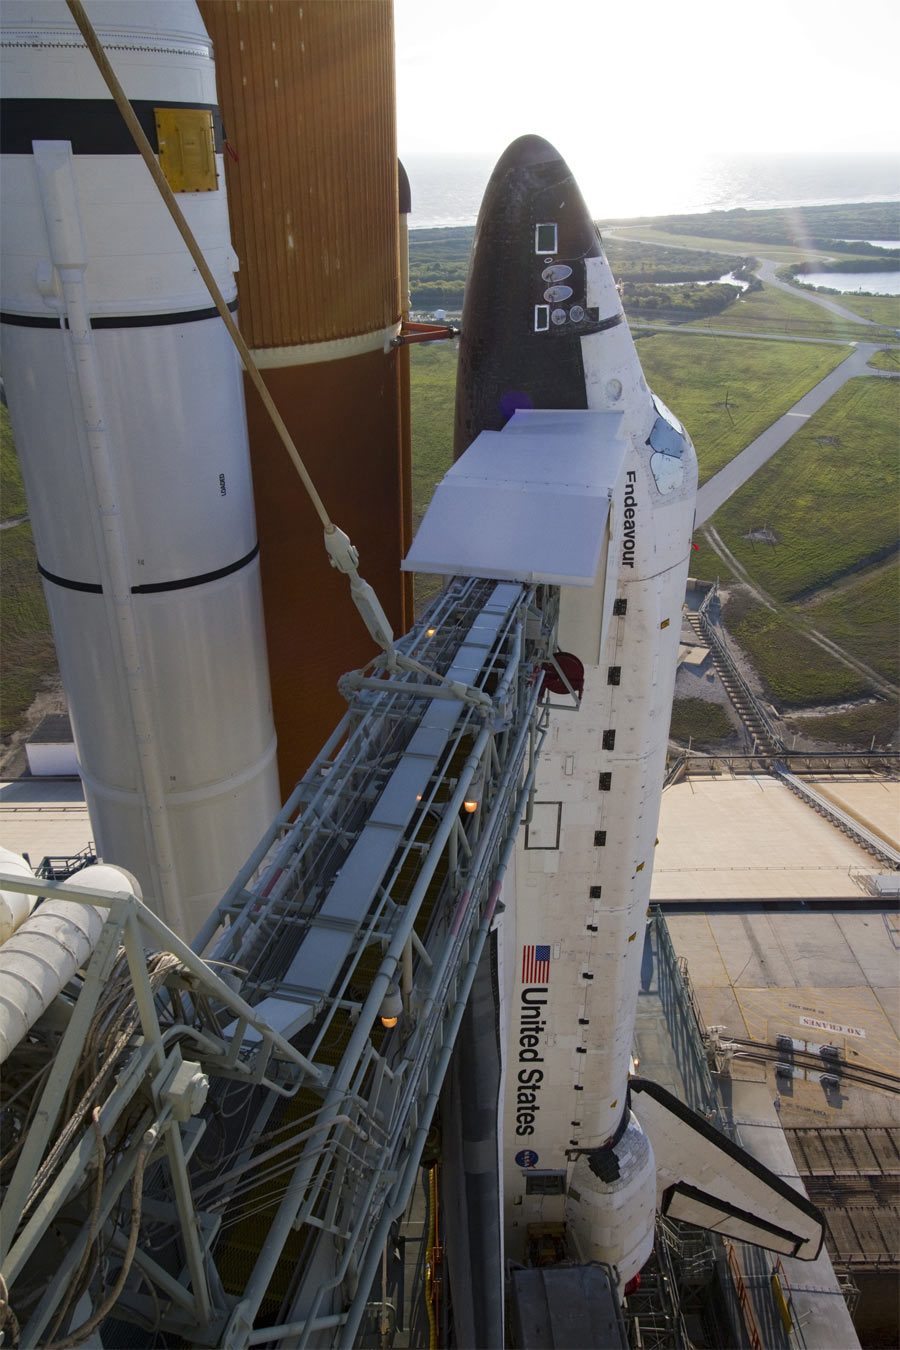 Shuttle Endeavour at Launch Pad 39A